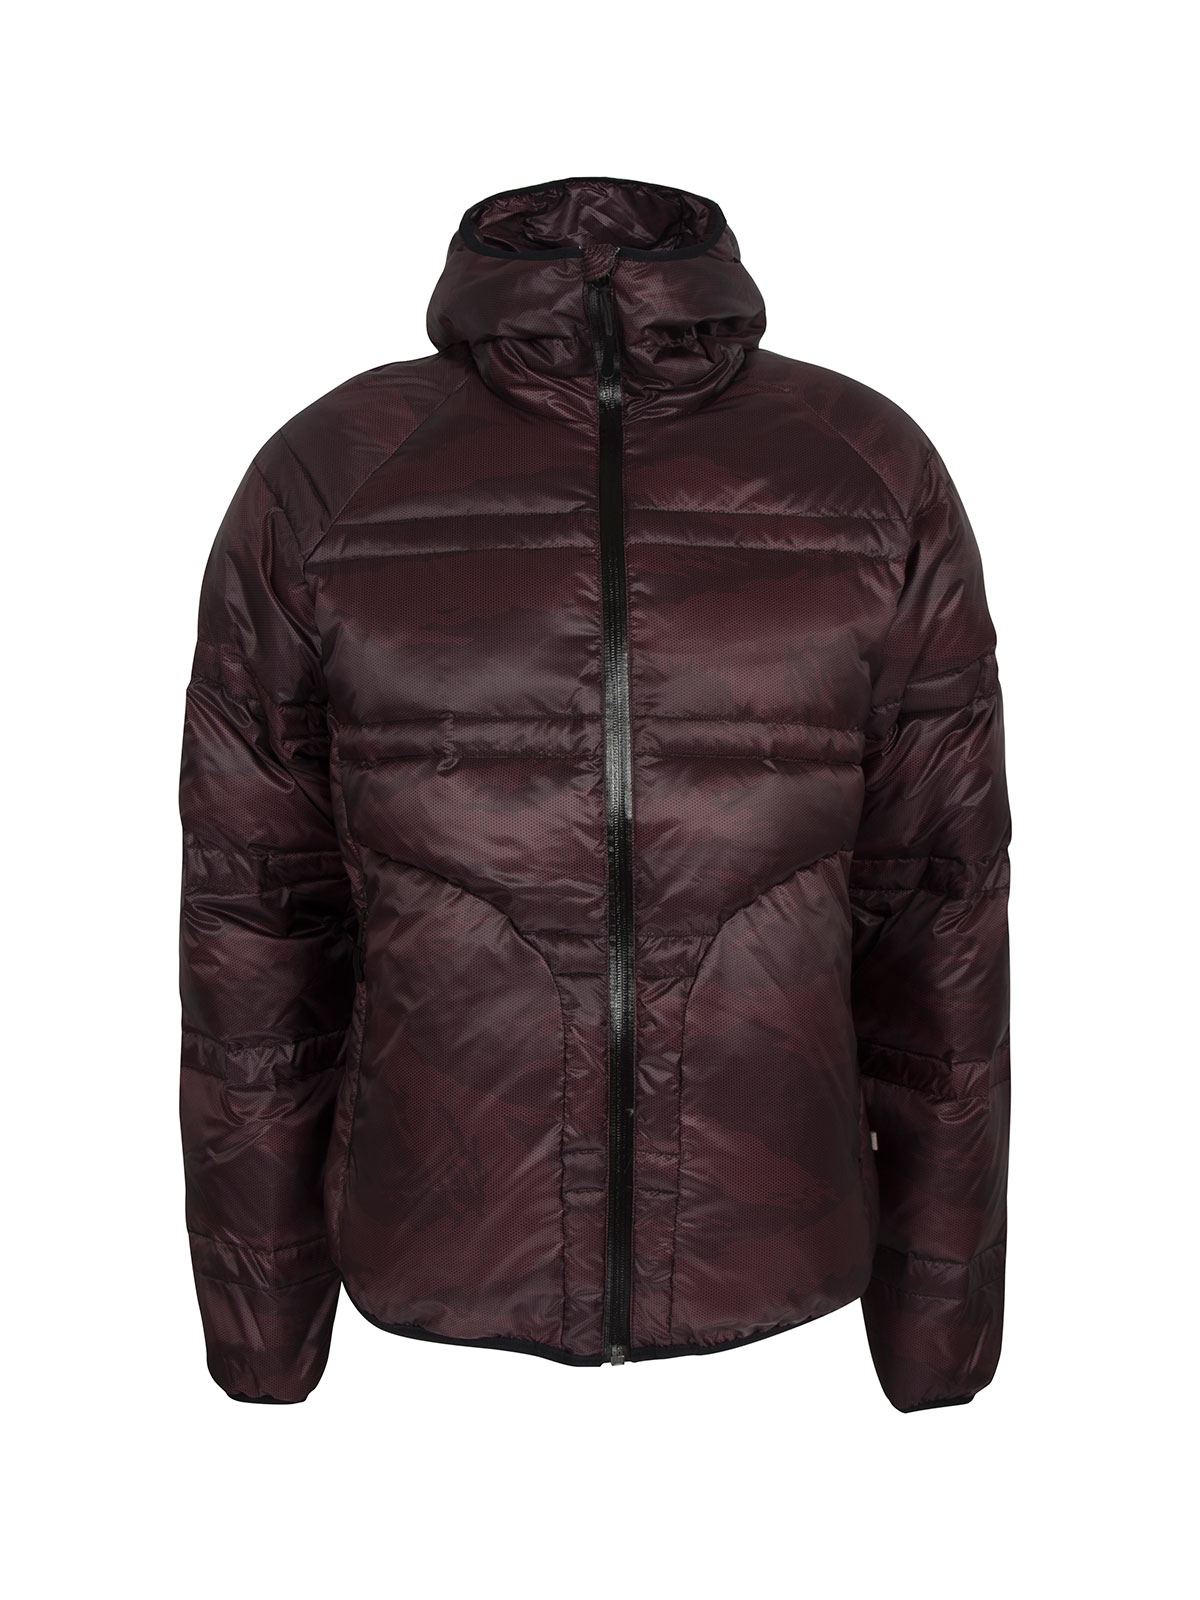 Replay Burgundy Puffa Jacket €220 at Arnotts